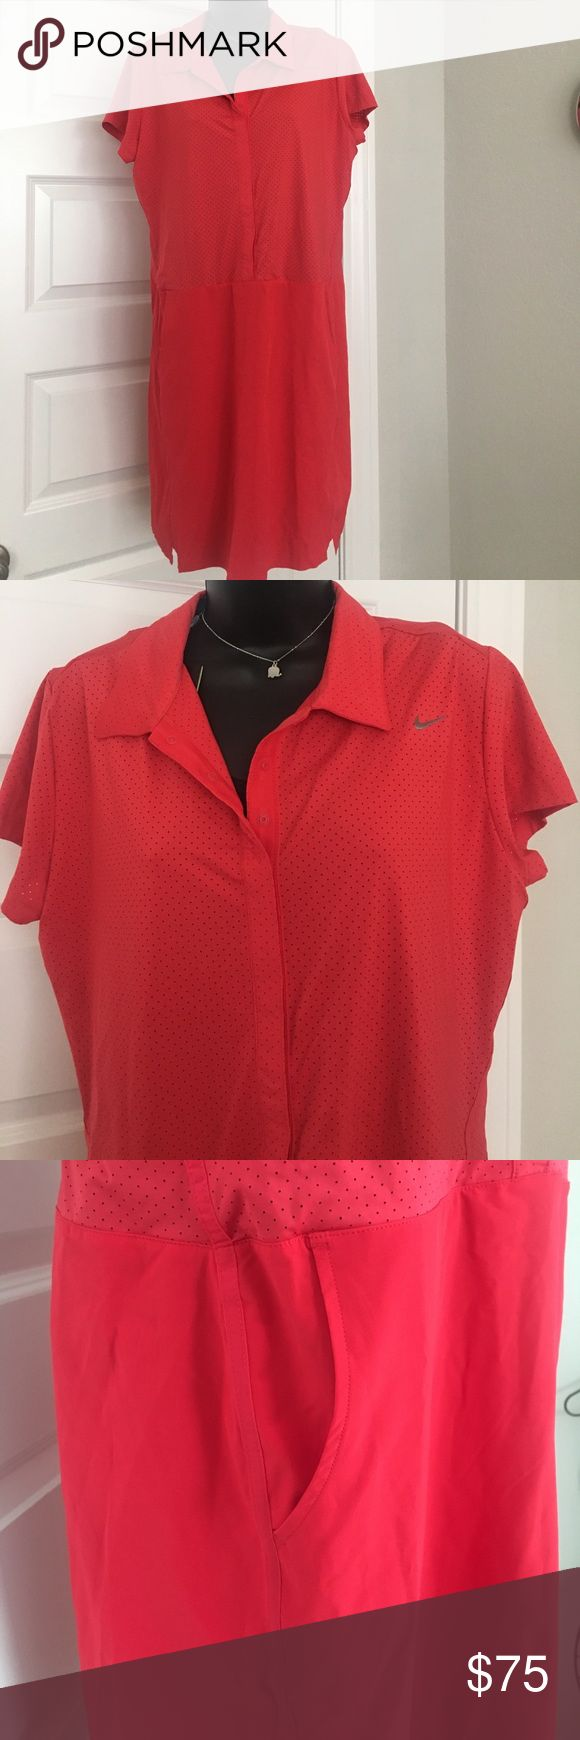 Nike Lady's Golf dress with detachable shorts Never worn. Button down front, side pockets and one back pocket. Nike Dresses